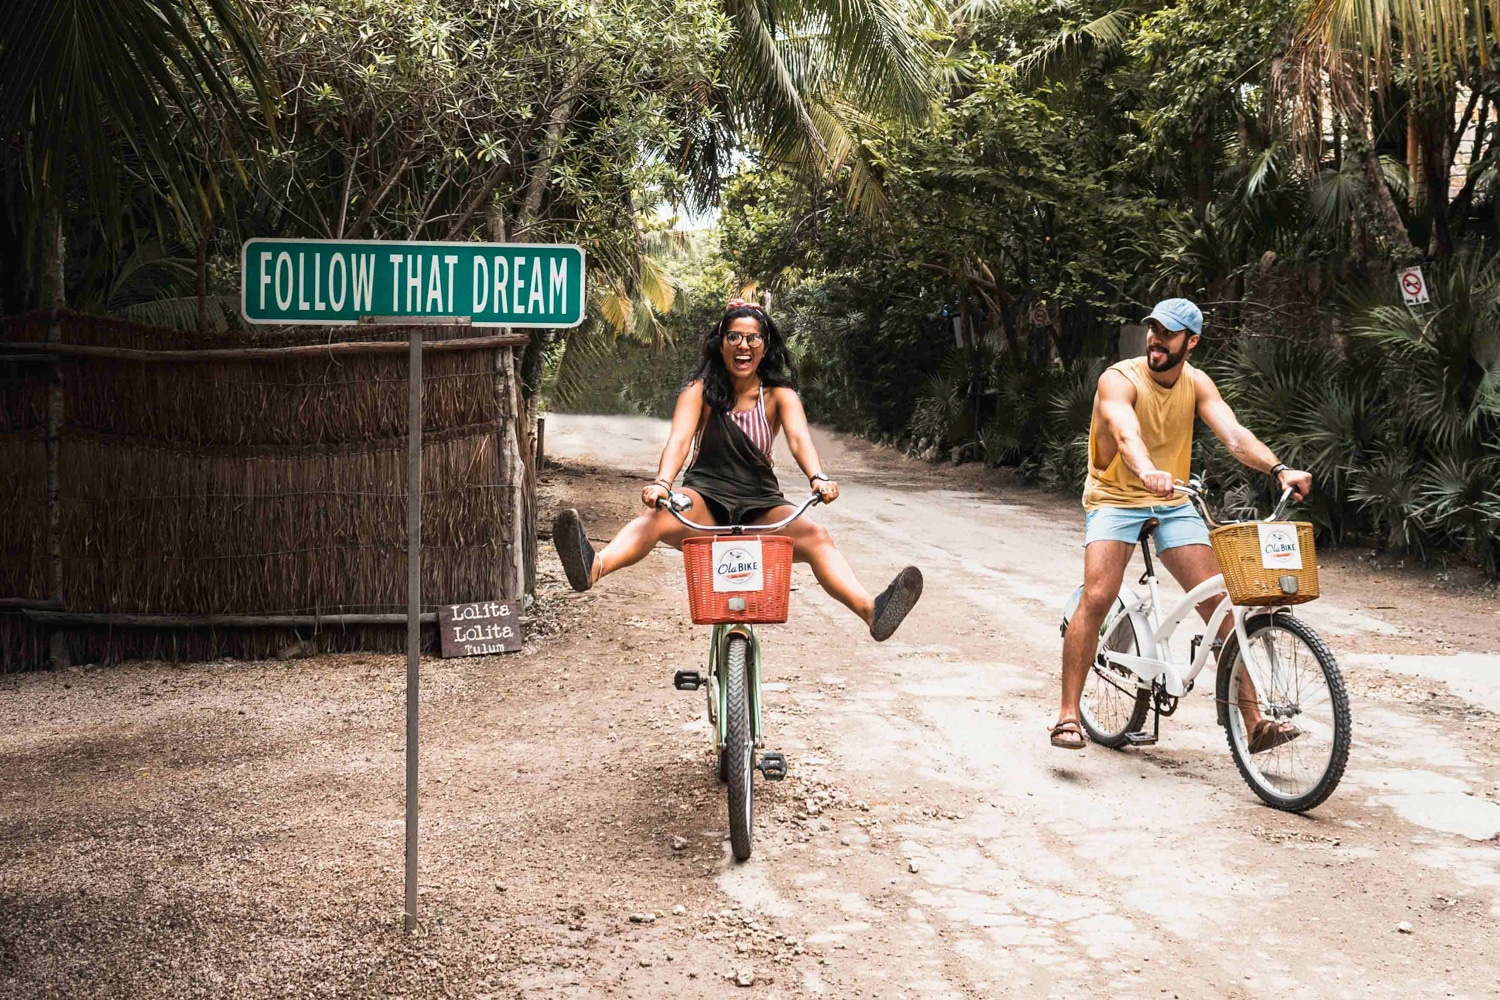 Biking around tulum mexico dirt road